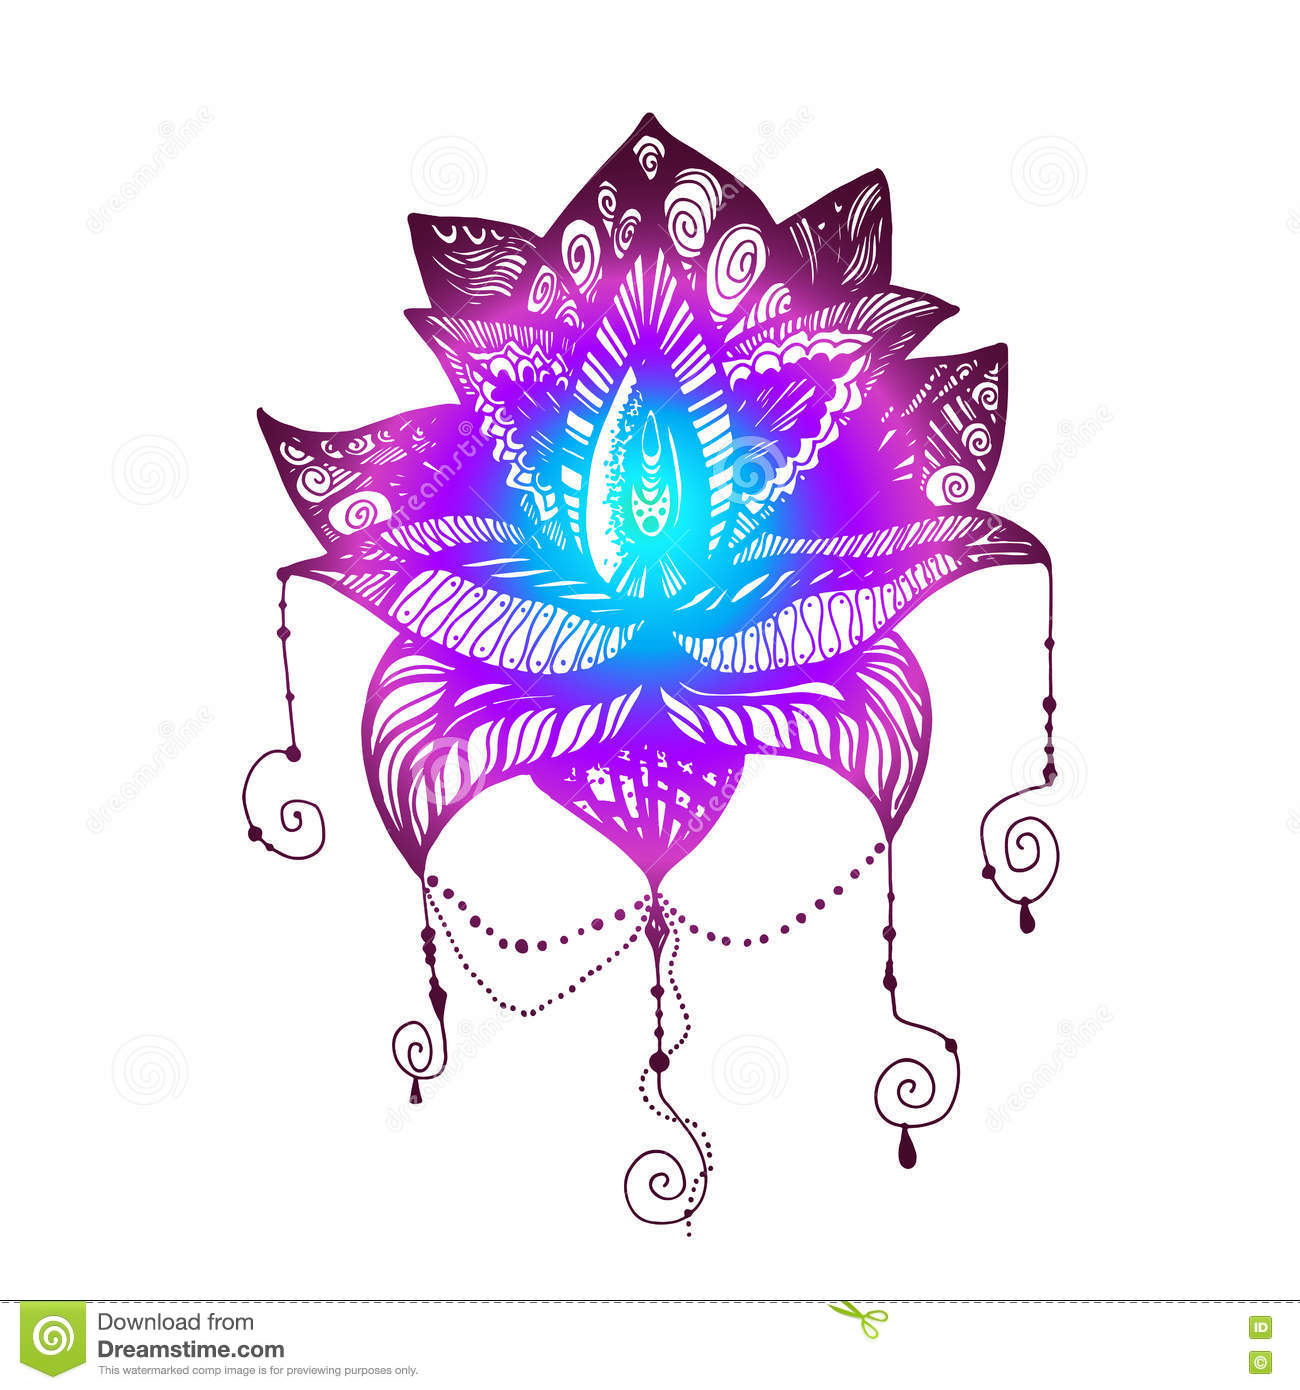 Flower lotus tattoo stock illustration illustration of bohemian flower lotus magic symbol for print tattoo coloring bookfabric t shirt cloth in boho style tribal lotus design vector izmirmasajfo